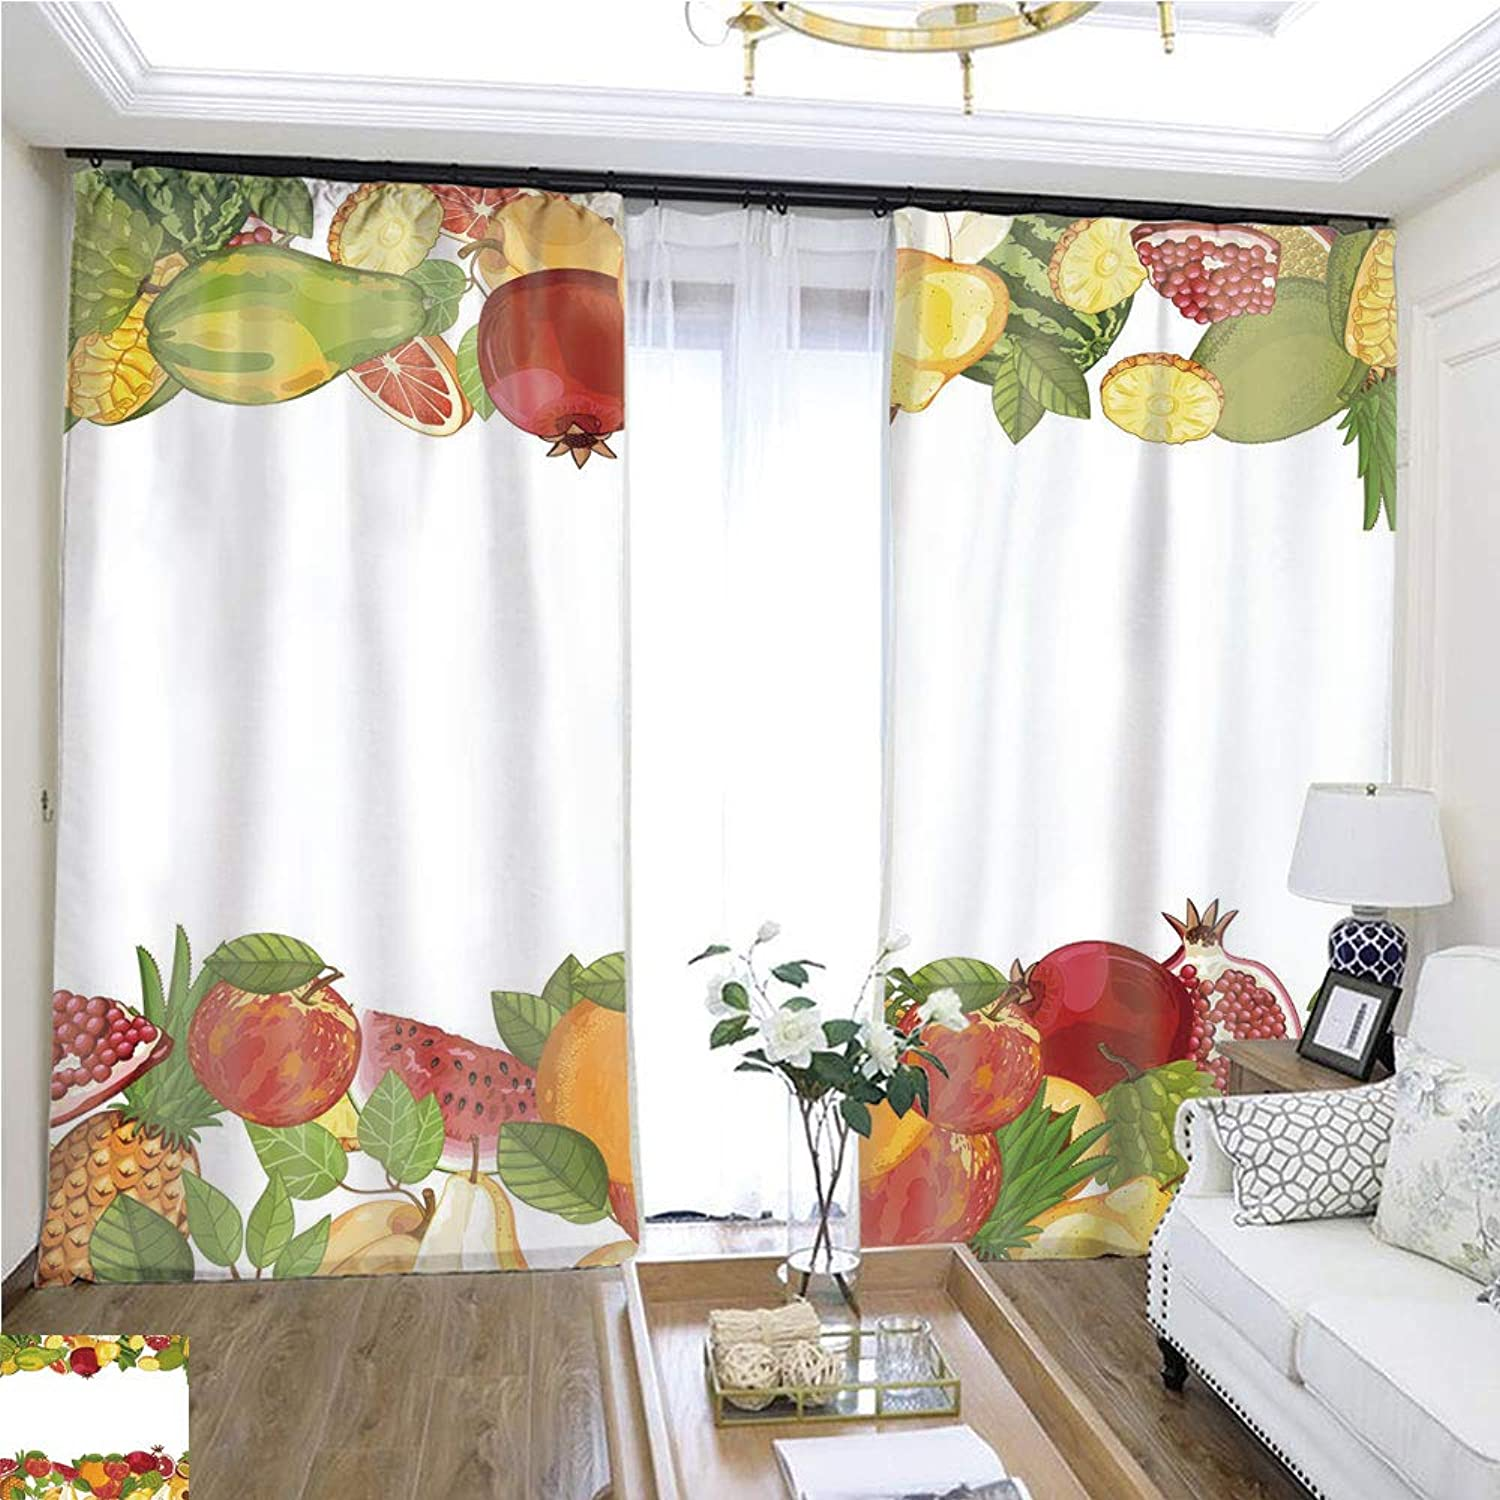 Air Port Screen Fruit Mix with Leaves on White background10 W96 x L180 Reduce Noise Highprecision Curtains for bedrooms Living Rooms Kitchens etc.